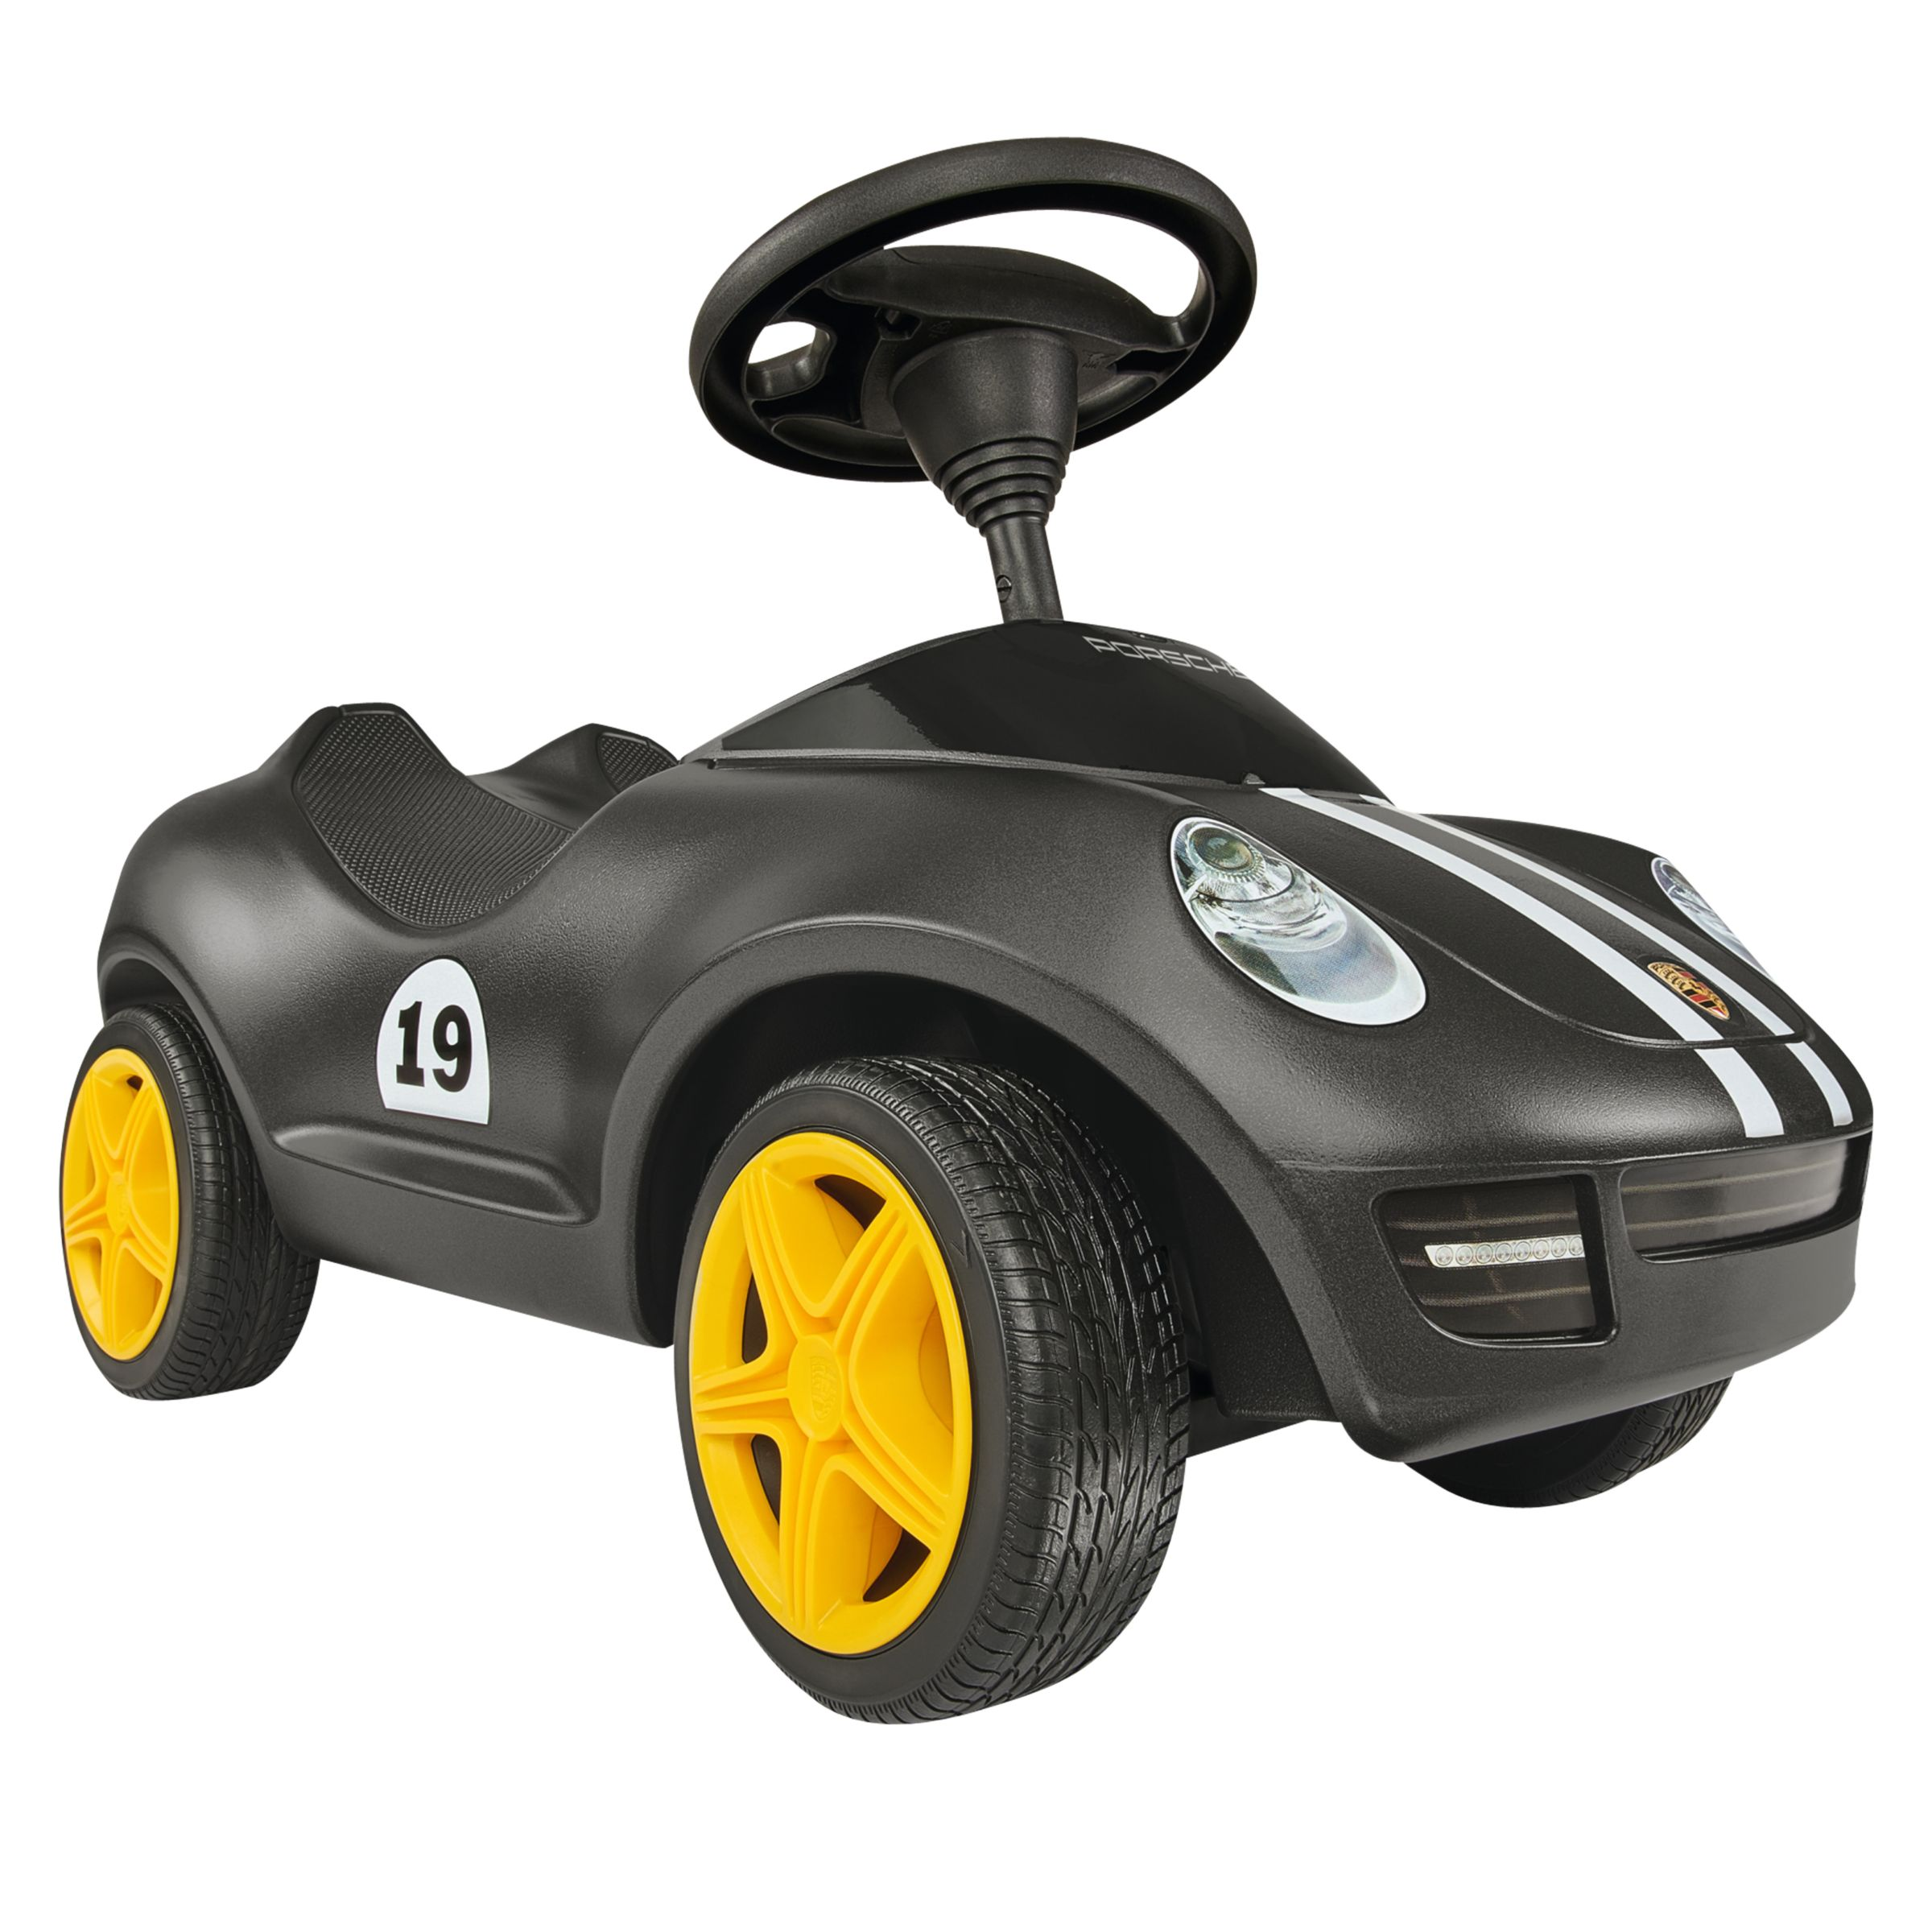 Smoby Smoby Baby Porsche Ride On Toy